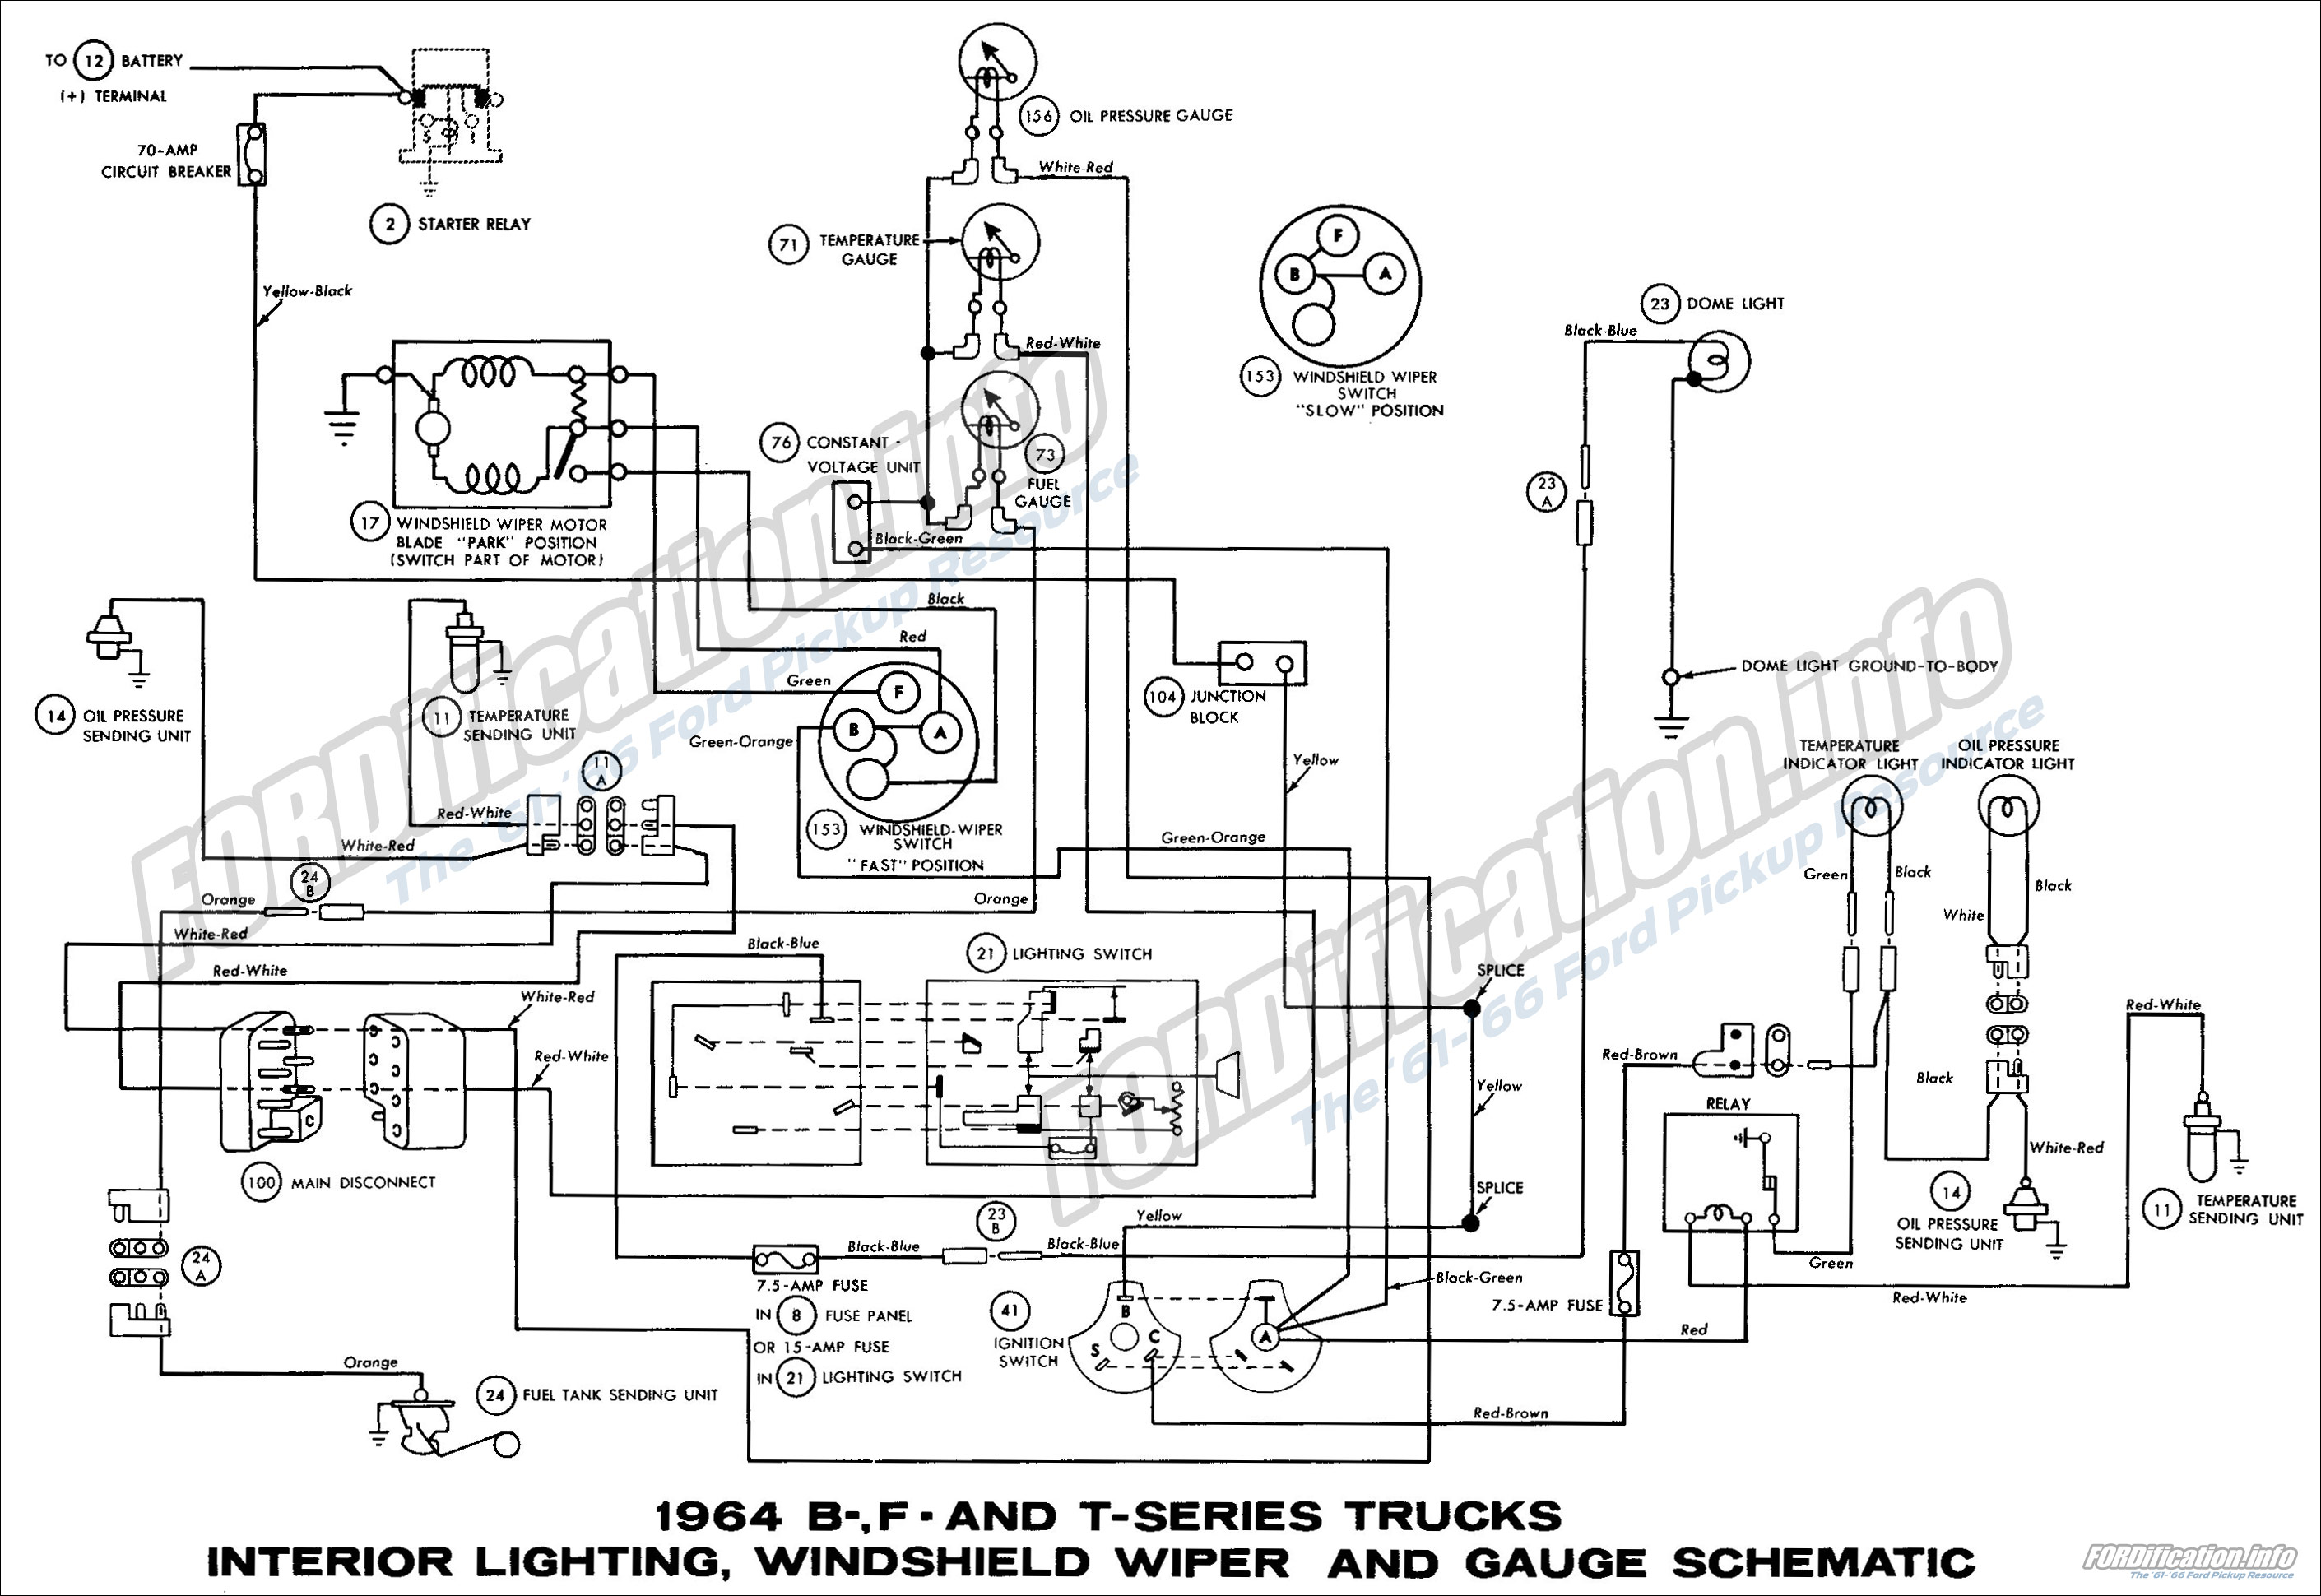 1964 Ford Truck Wiring Diagram Library Econoline Van B F And T Series Trucks Interior Lighting Windshield Wiper Diagrams